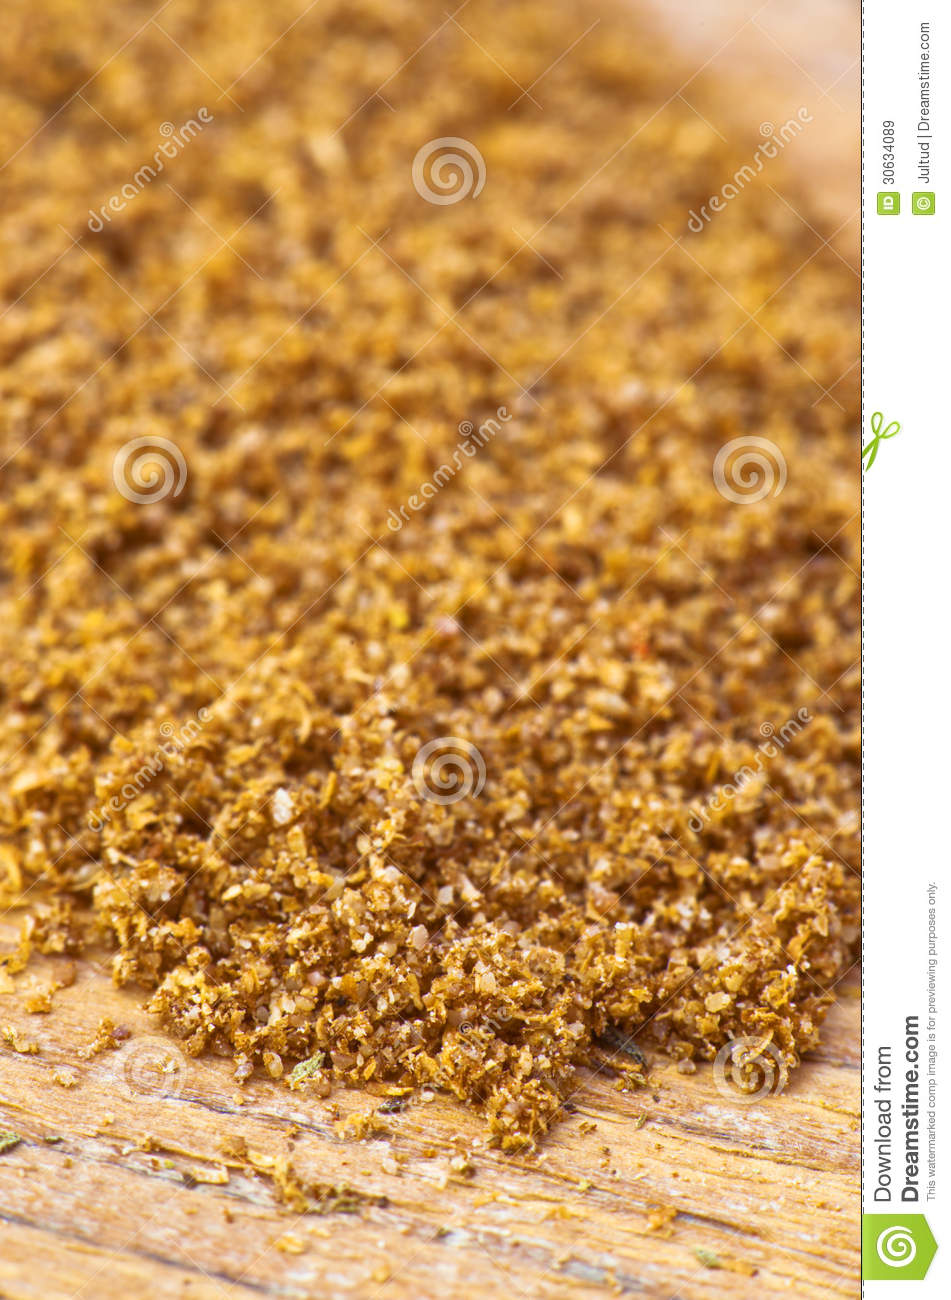 Ground Coriander Making Approach Royalty Free Stock Images